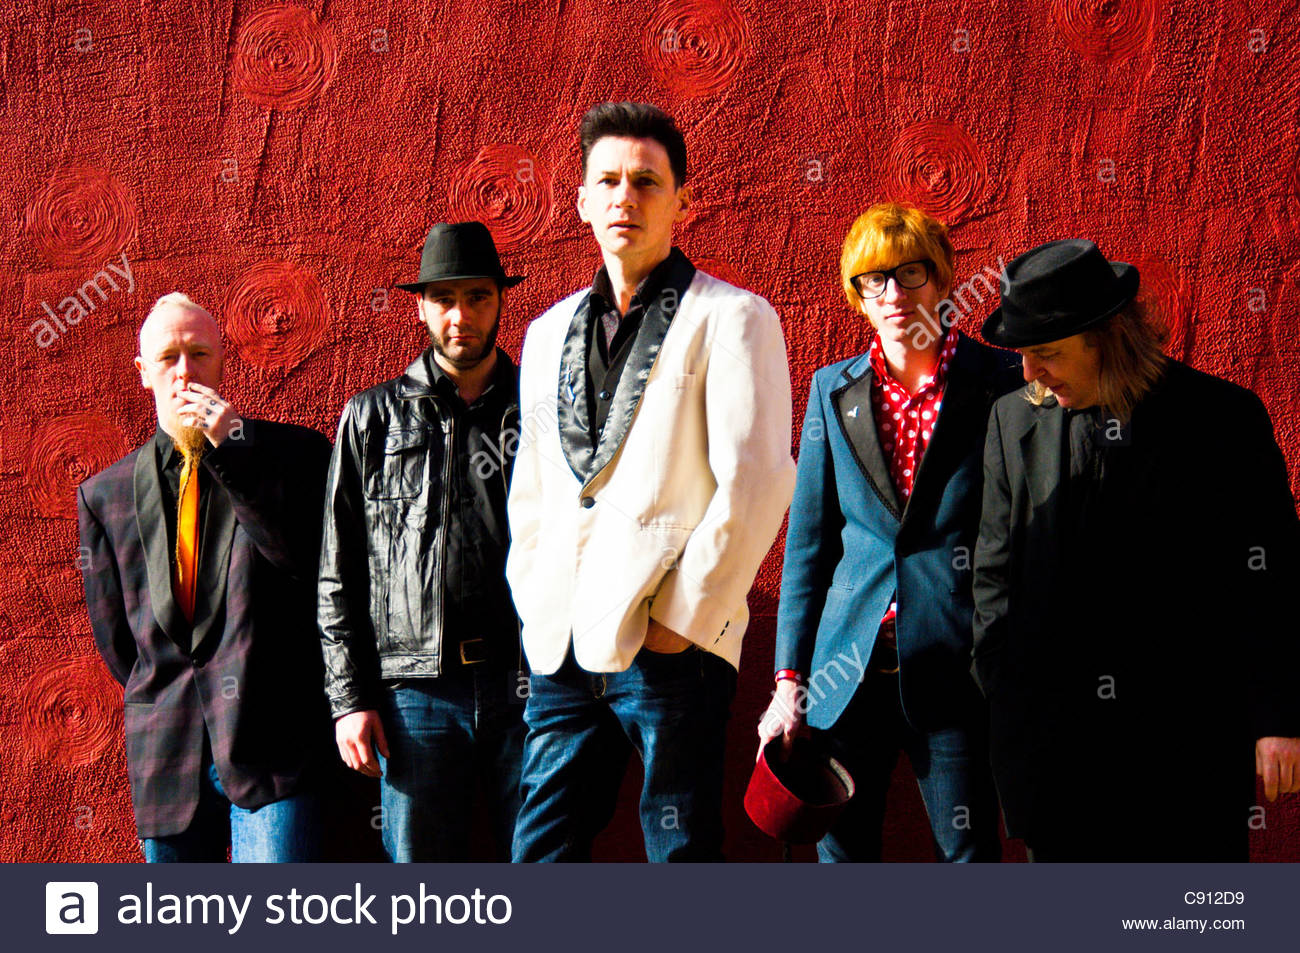 Tommy Scott and the Red Scare, official portrait Liverpool based band formed by Tommy Scott of former Liverpool - Stock Image